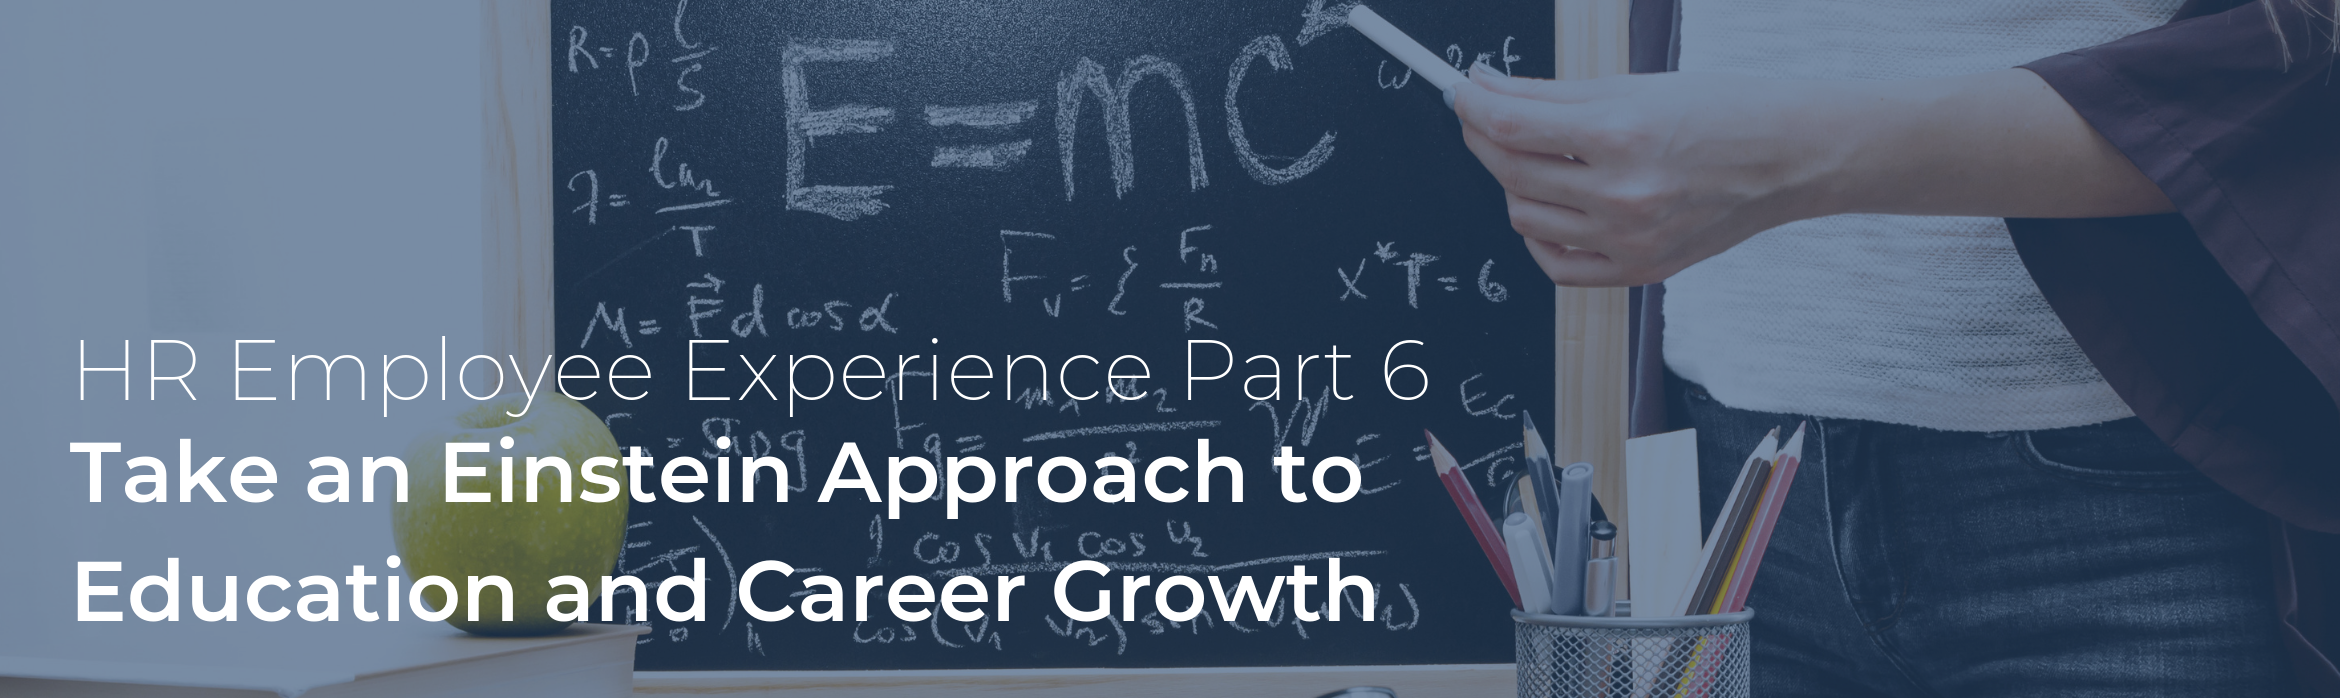 Take an Einstein Approach to Education and Career Growth